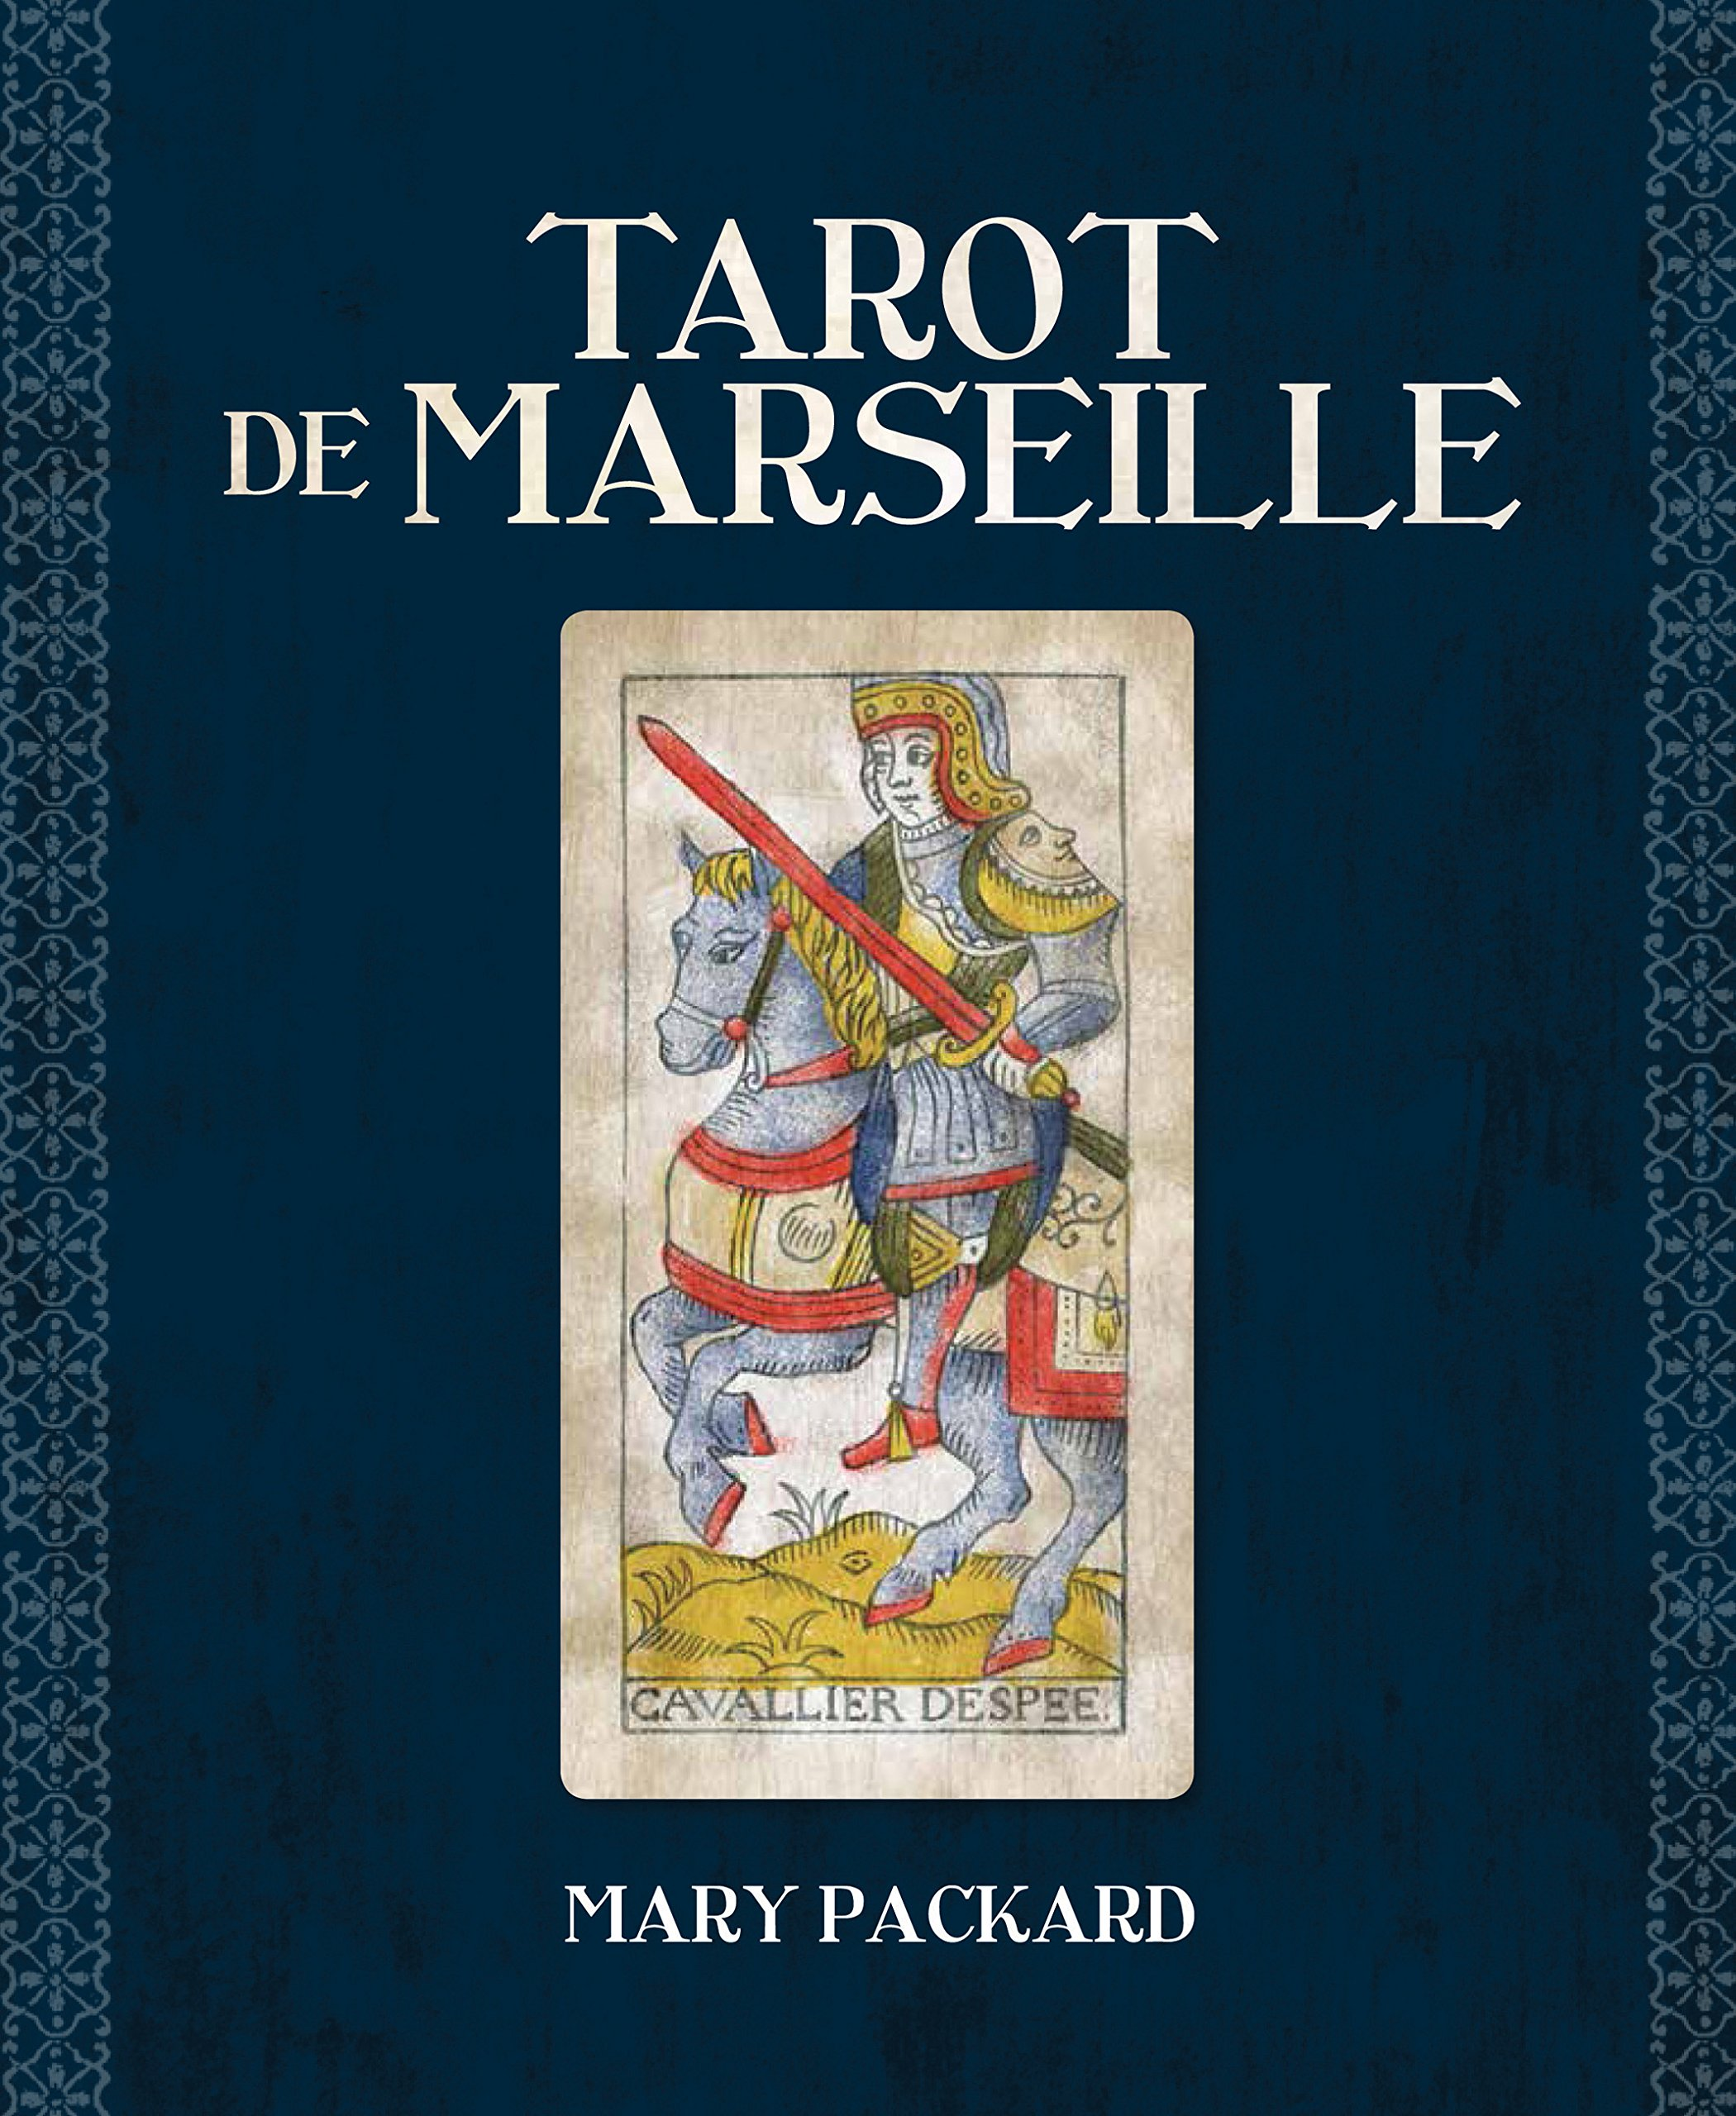 Tarot de Marseille: Amazon.es: Mary Packard: Libros en ...